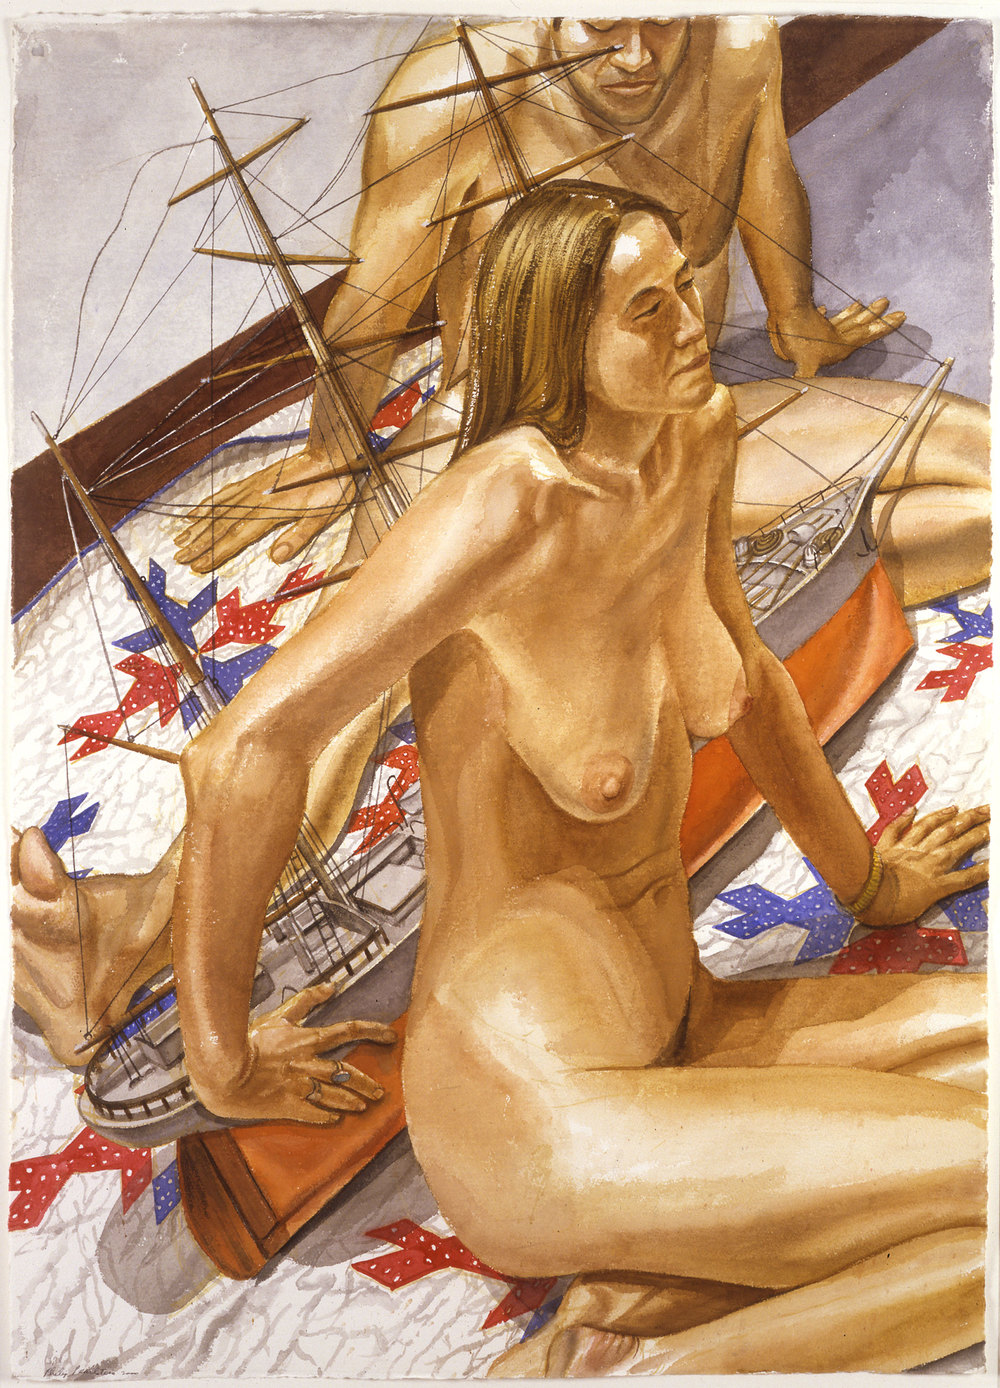 MALE AND FEMALE MODELS WITH MODEL OF TALL SHIP , 2000 Watercolor on paper 41 3/8 x 29 5/8 inches